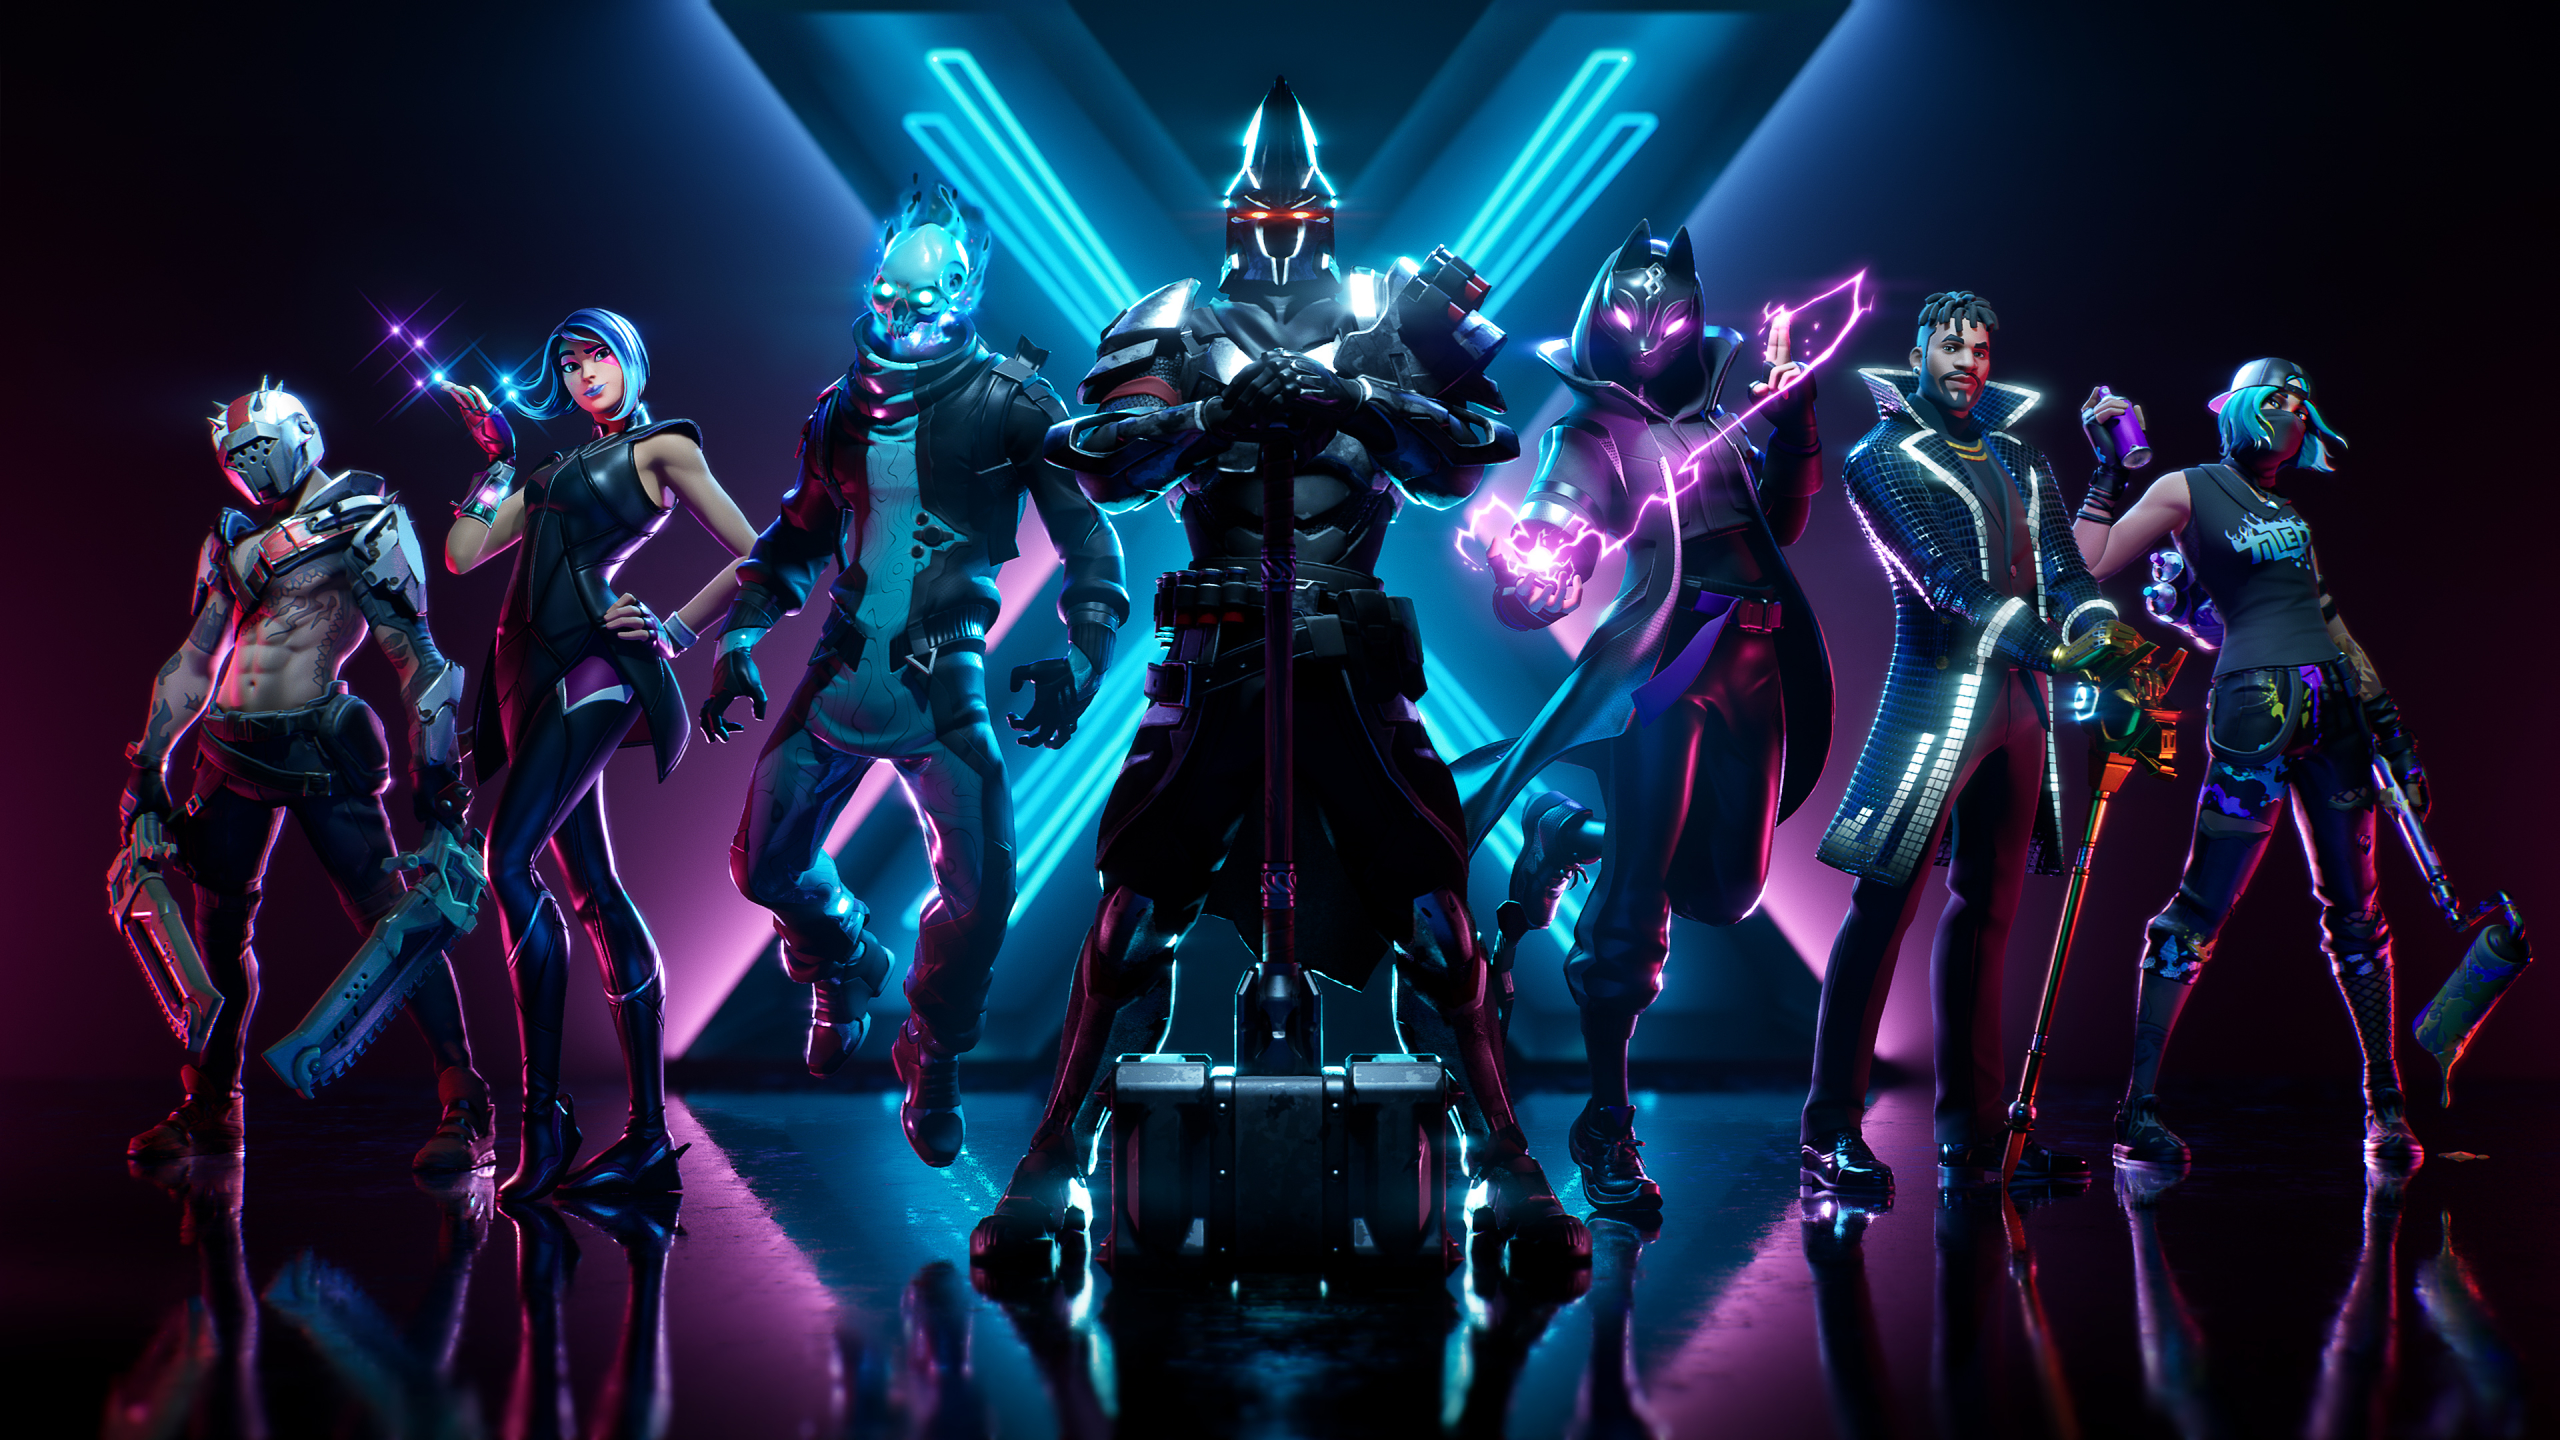 2560x1440 Fortnite Season X 1440p Resolution Wallpaper Hd